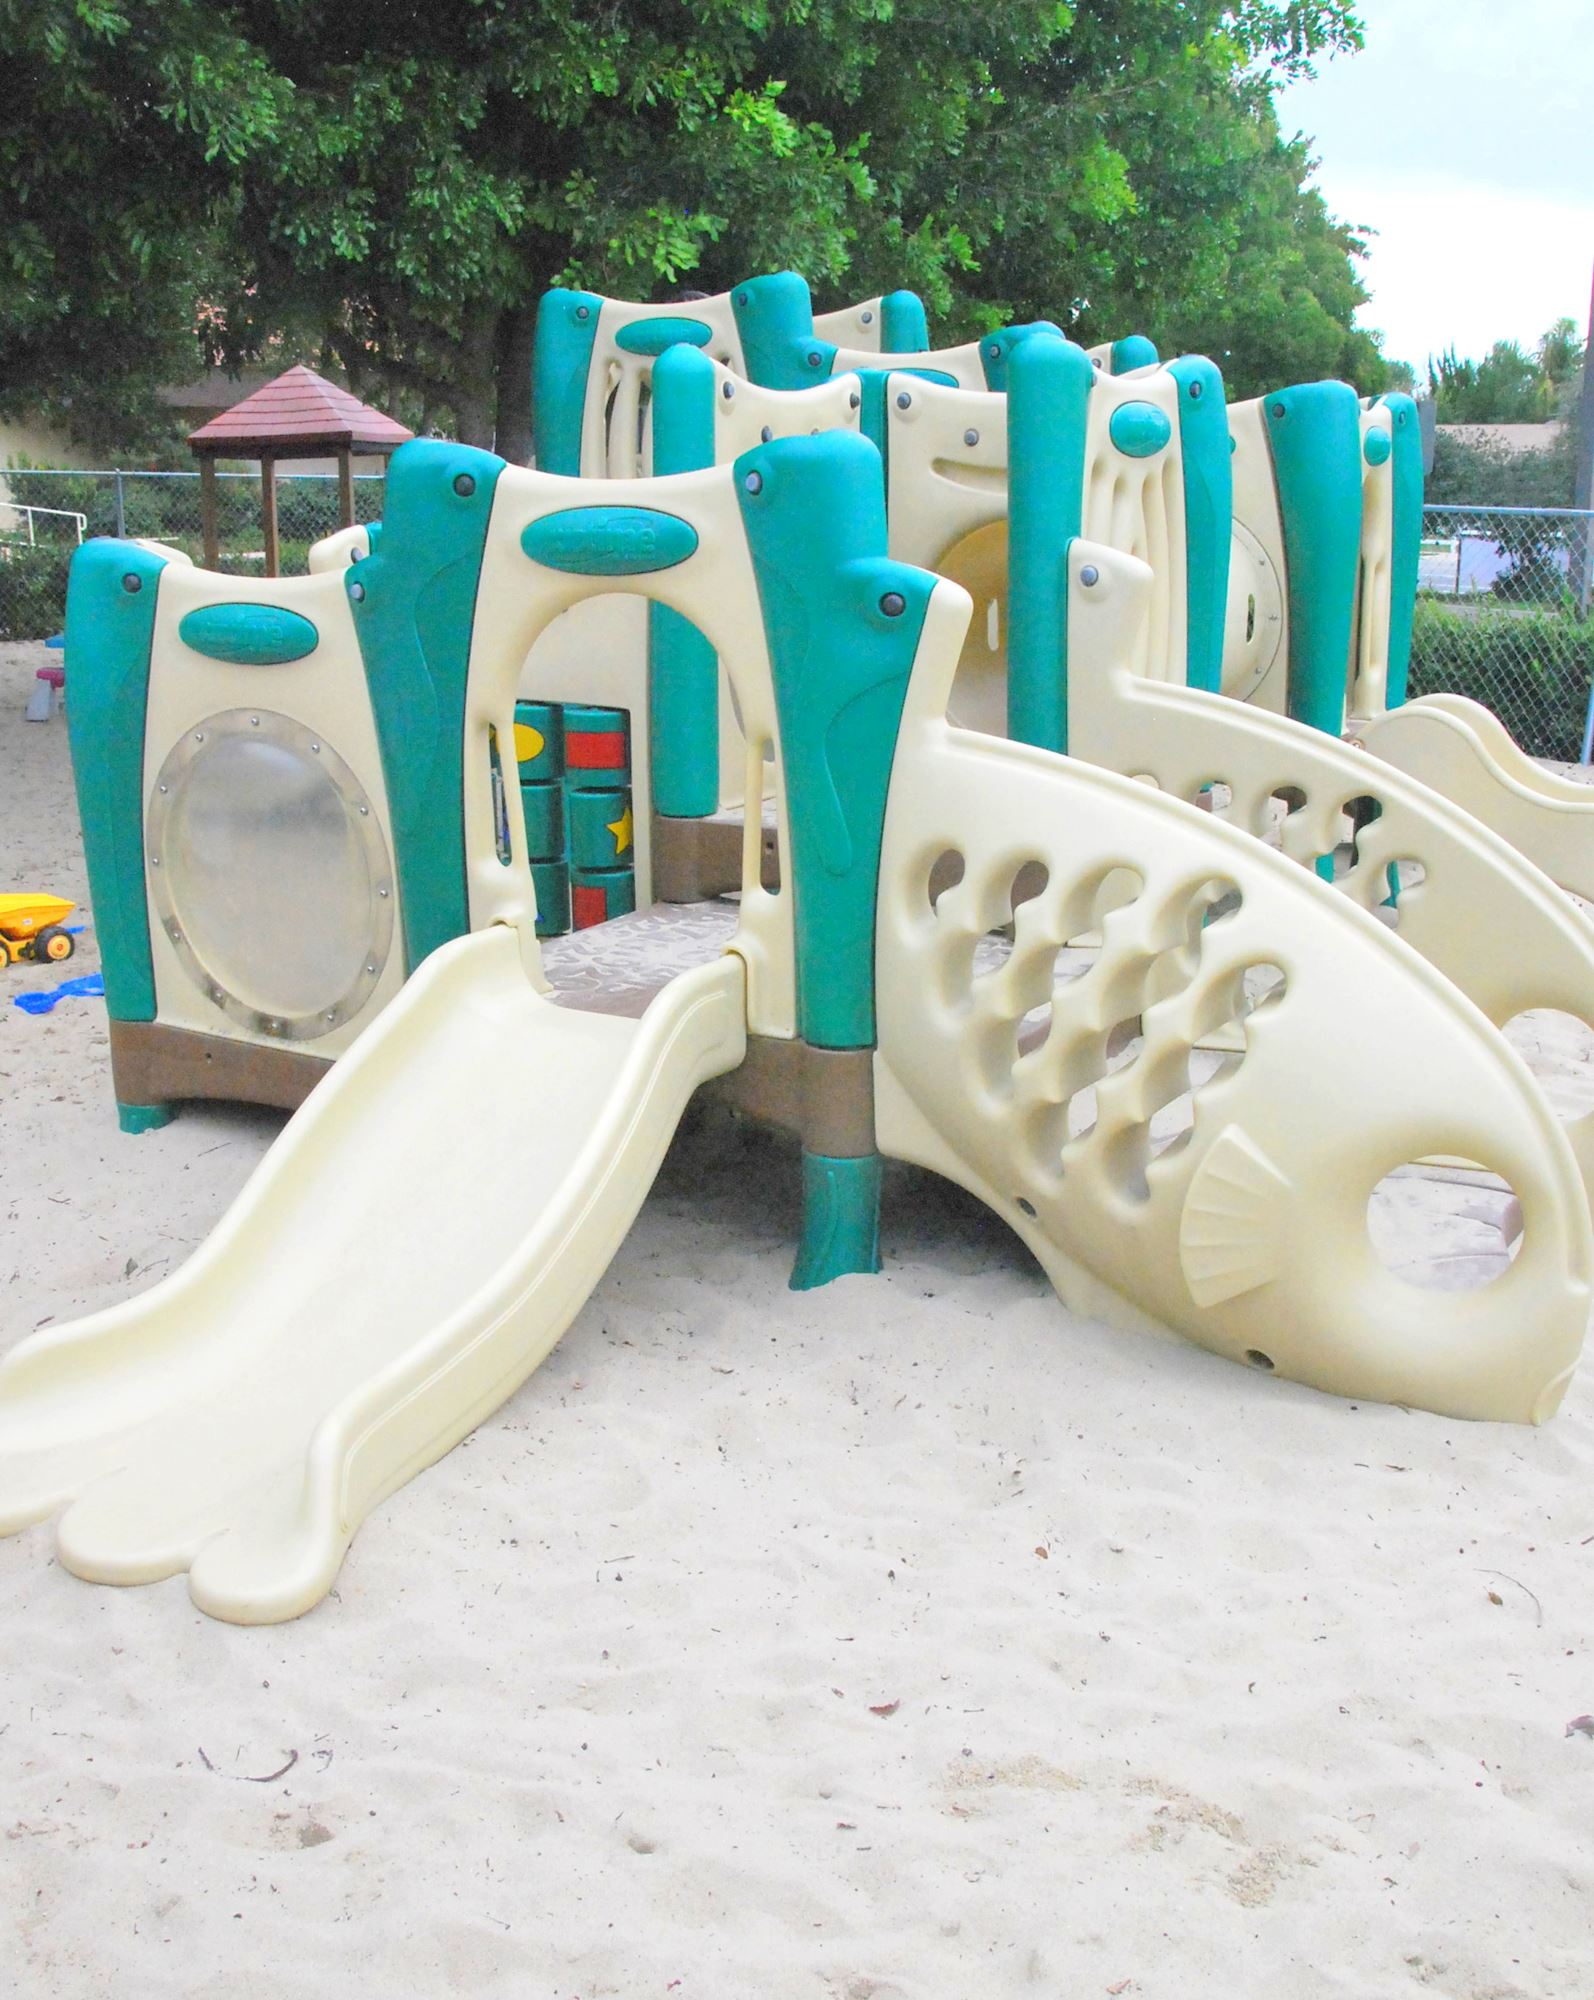 Large play structure with lots of activities.